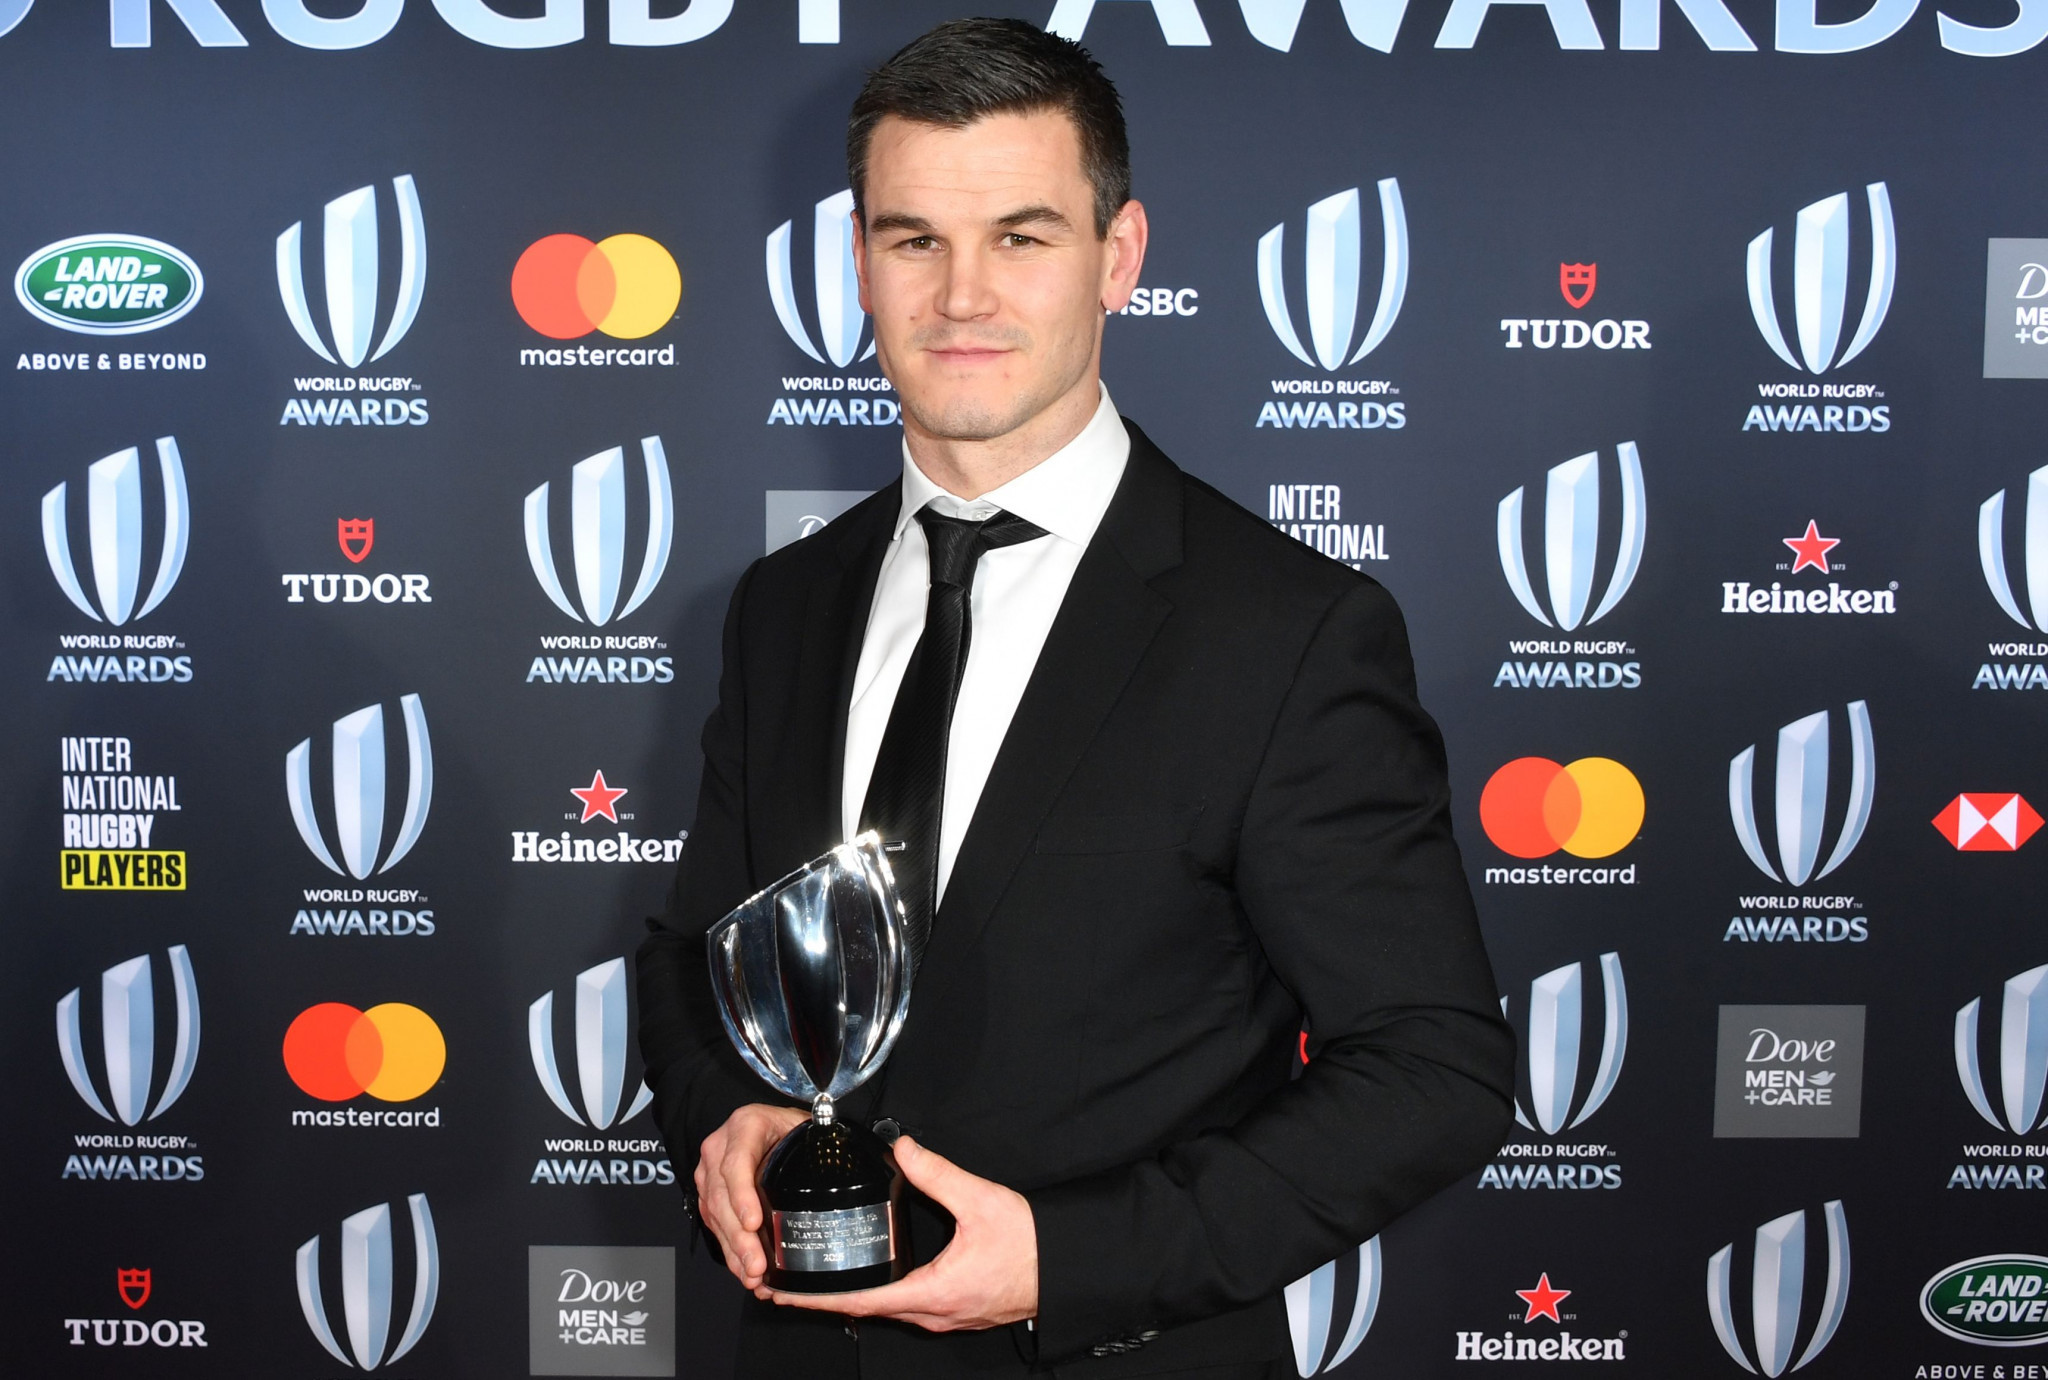 Ireland celebrate successful year with three wins at World Rugby Awards in Monte Carlo